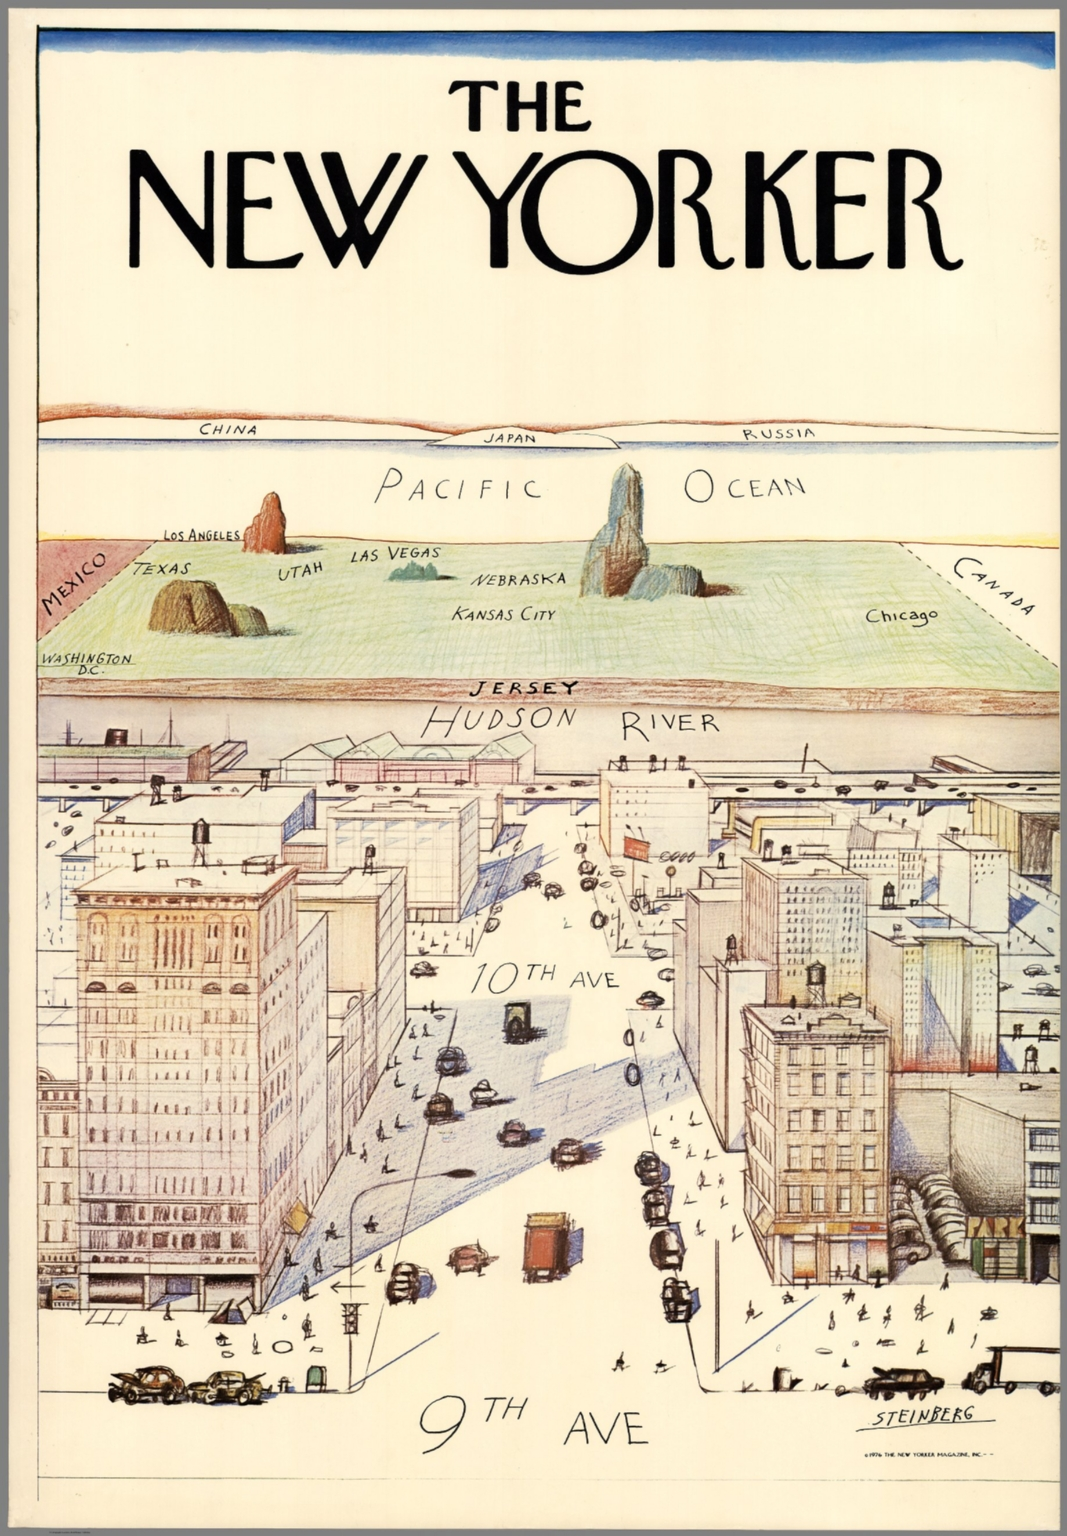 New Yorkers Map Of The World.The New Yorker Steinberg 1976 The New Yorker Magazine Inc